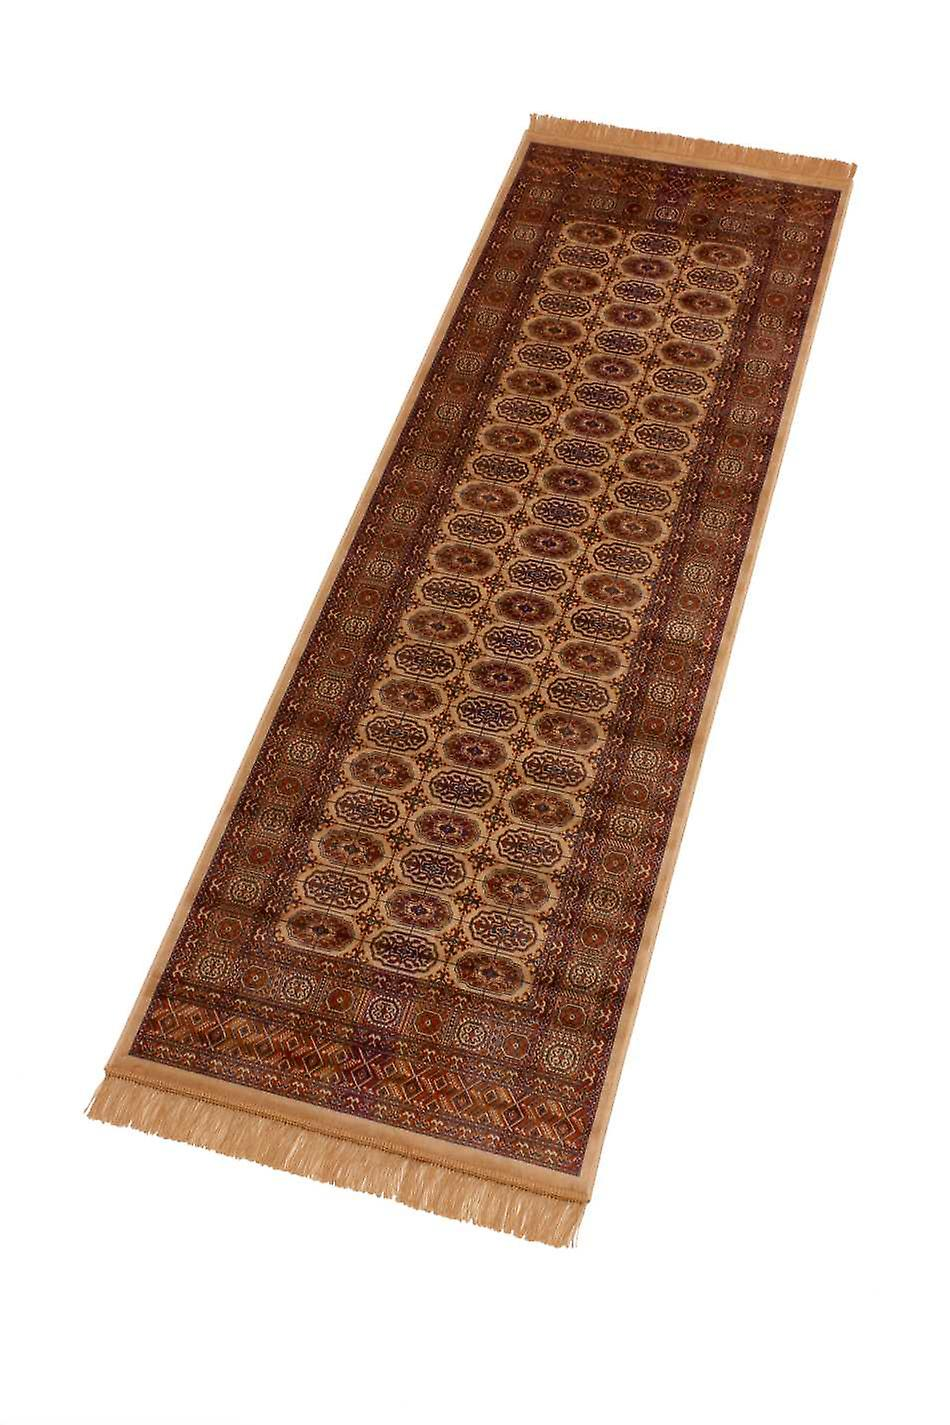 Persian Bokhara Artsilk Faux Silk Effect Hall Runner Rugs 8438/4